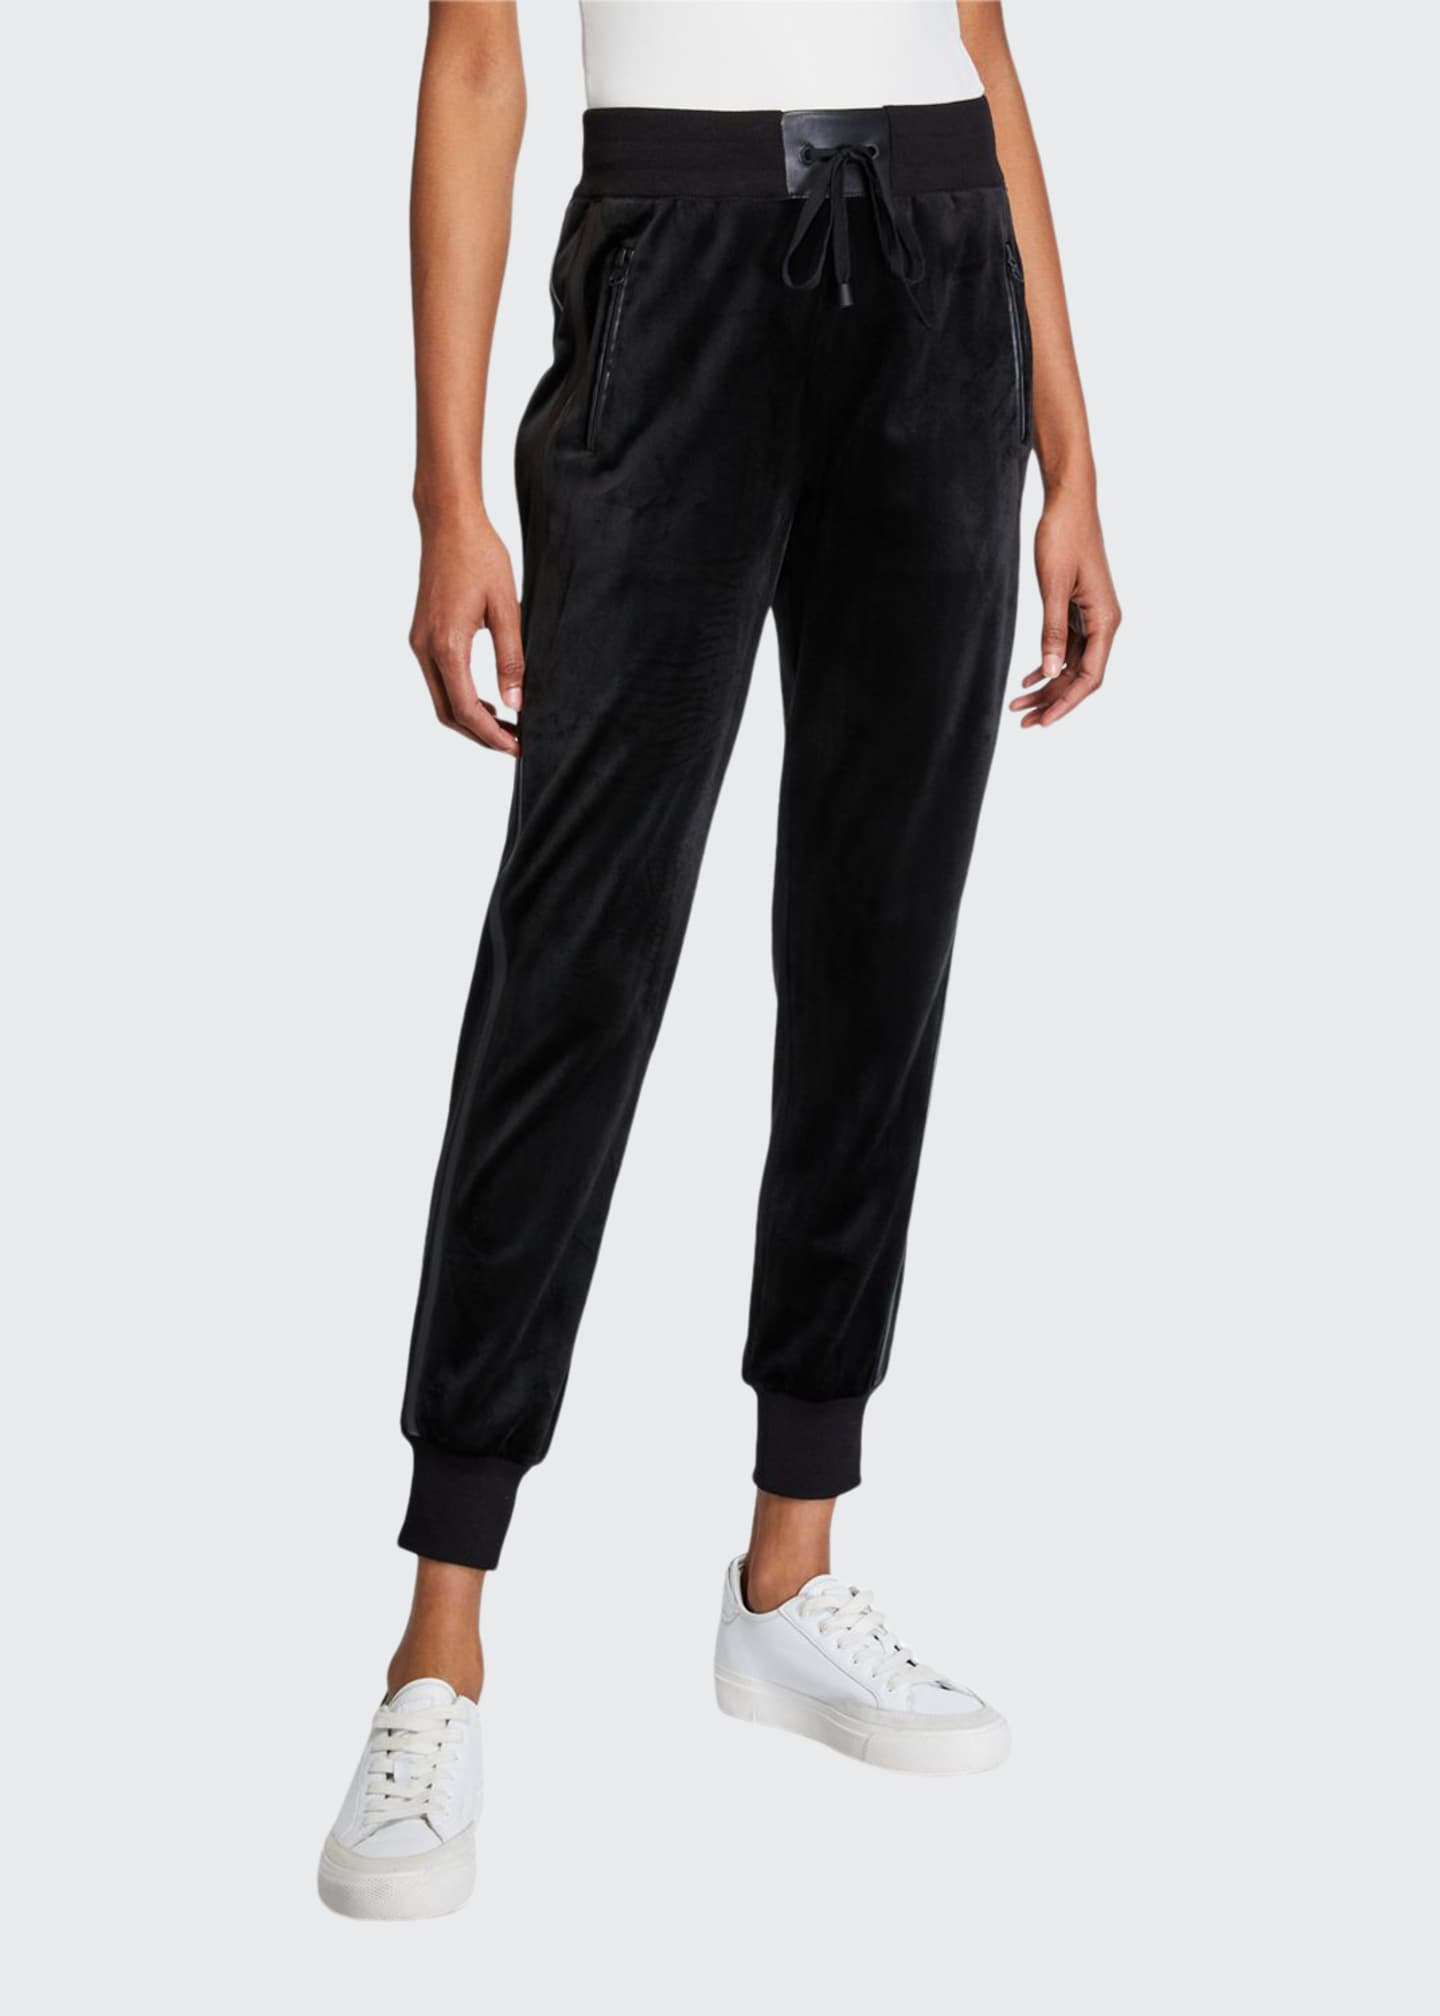 Blanc Noir Interpol High Rise Velvet Jogger Pants